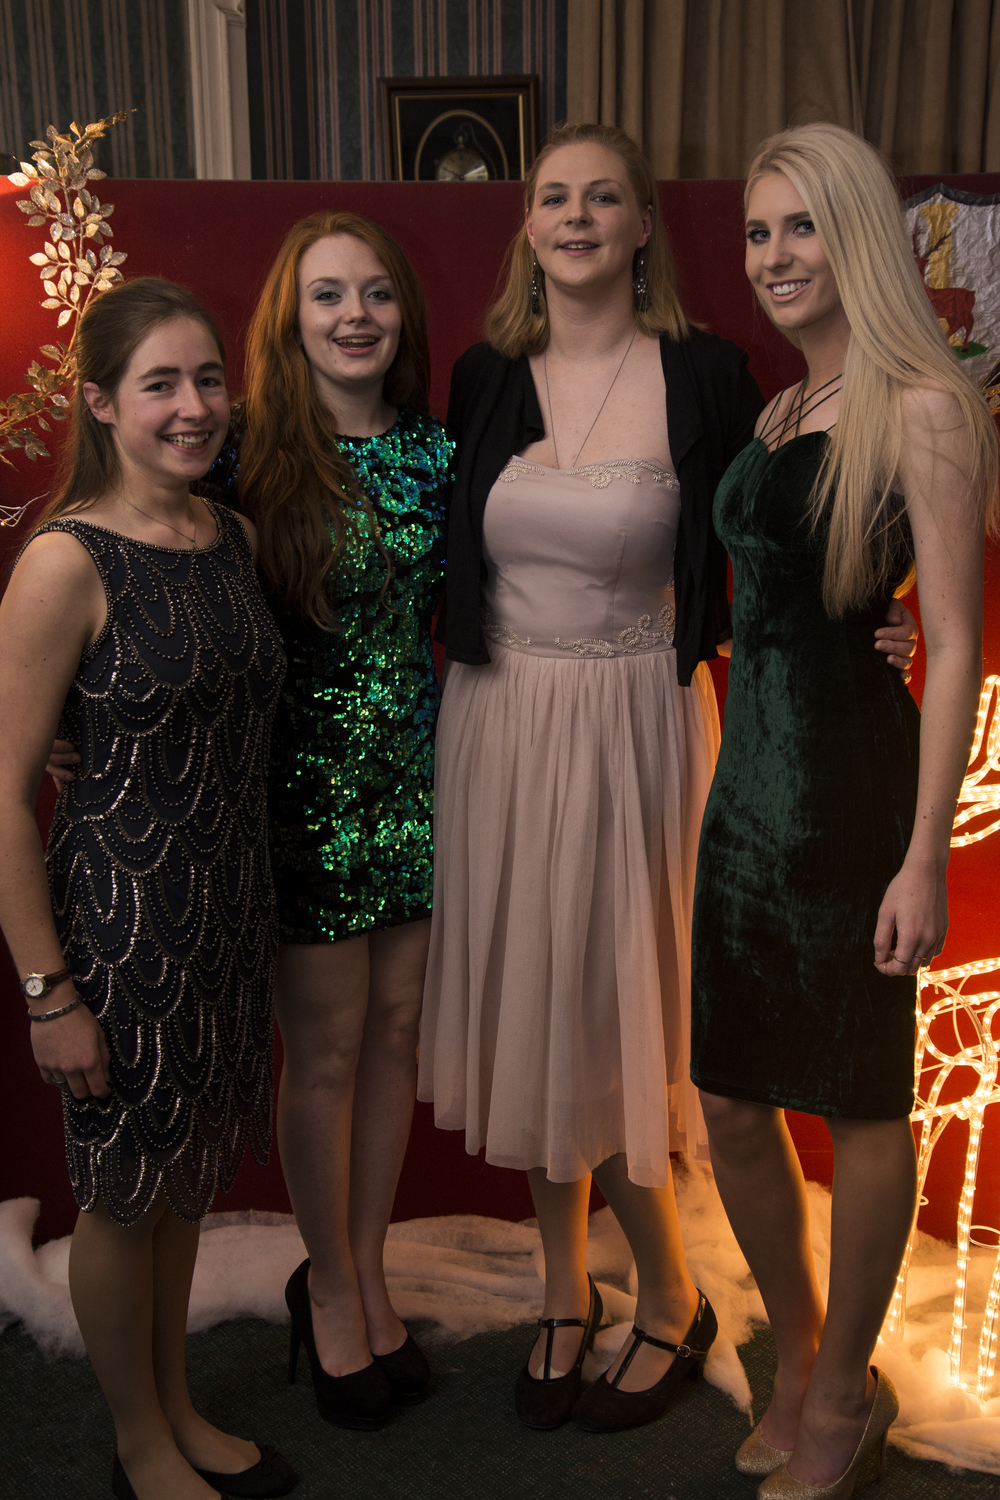 SAUS_winter_ball12121511.jpg